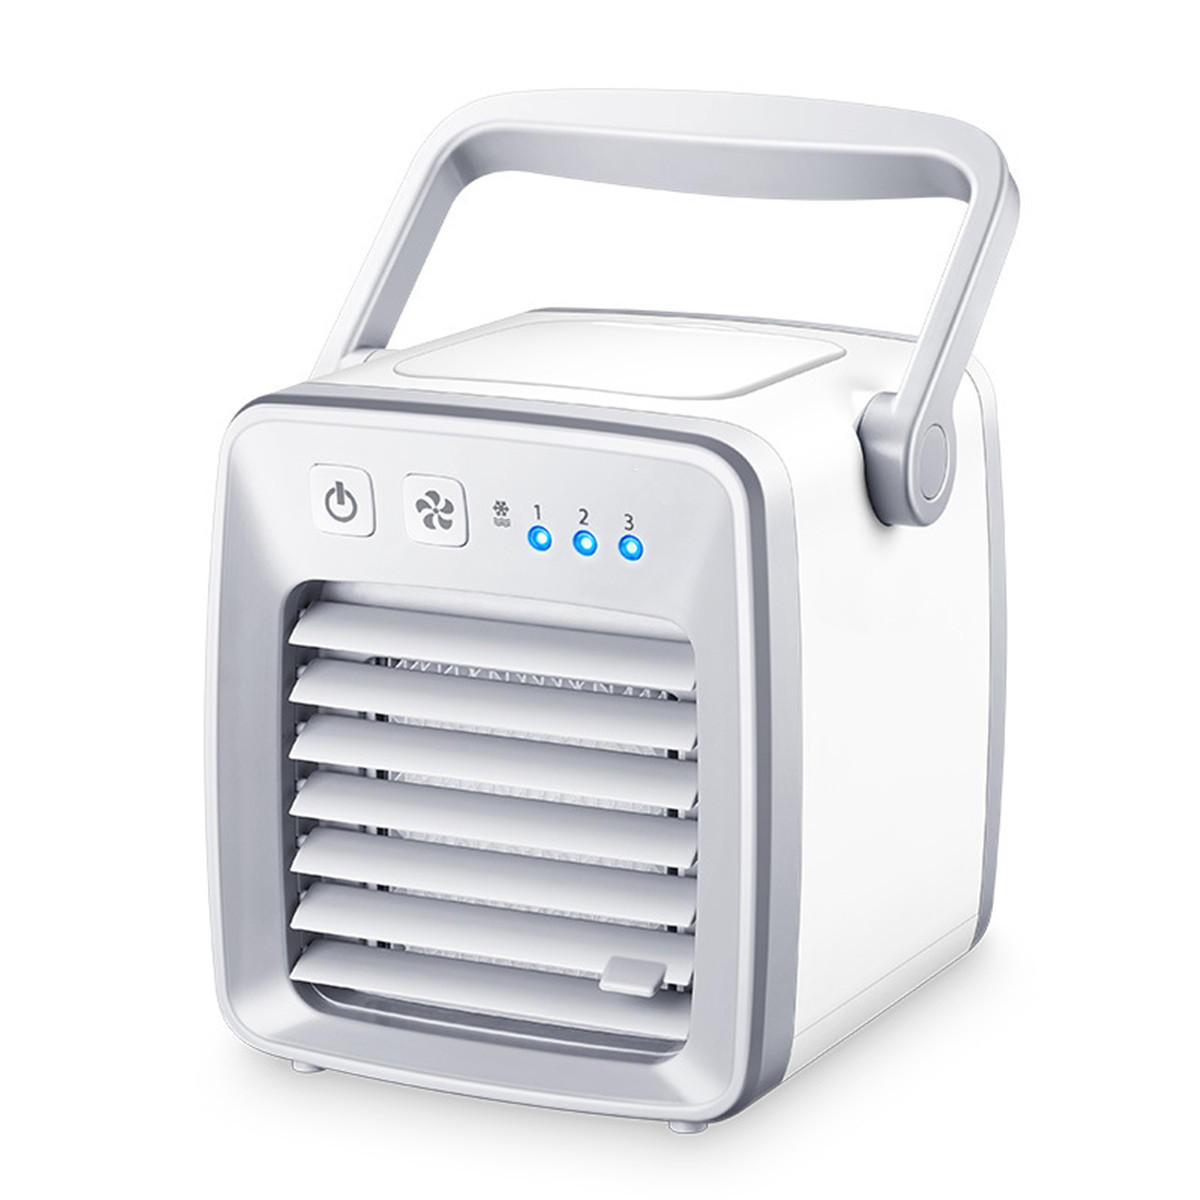 9c4daba3a58 personal air cooler fan usb portable air conditioner refrigeration  humidification purification Sale - Banggood.com sold out